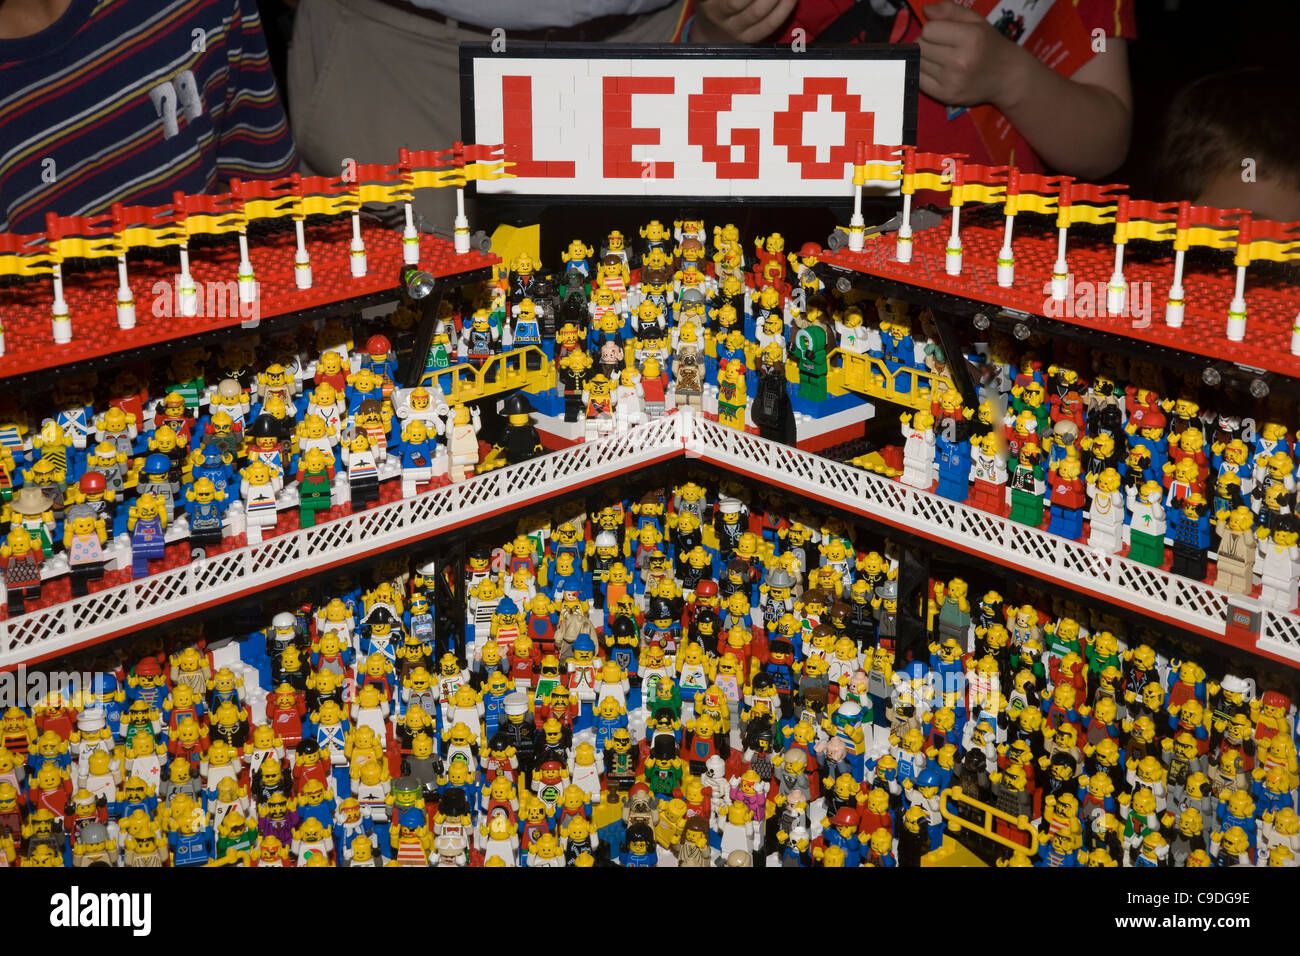 Lego model stadium and mini figure crowd at the Lego Convention at the GWR Steam Museum in Swindon - Stock Image